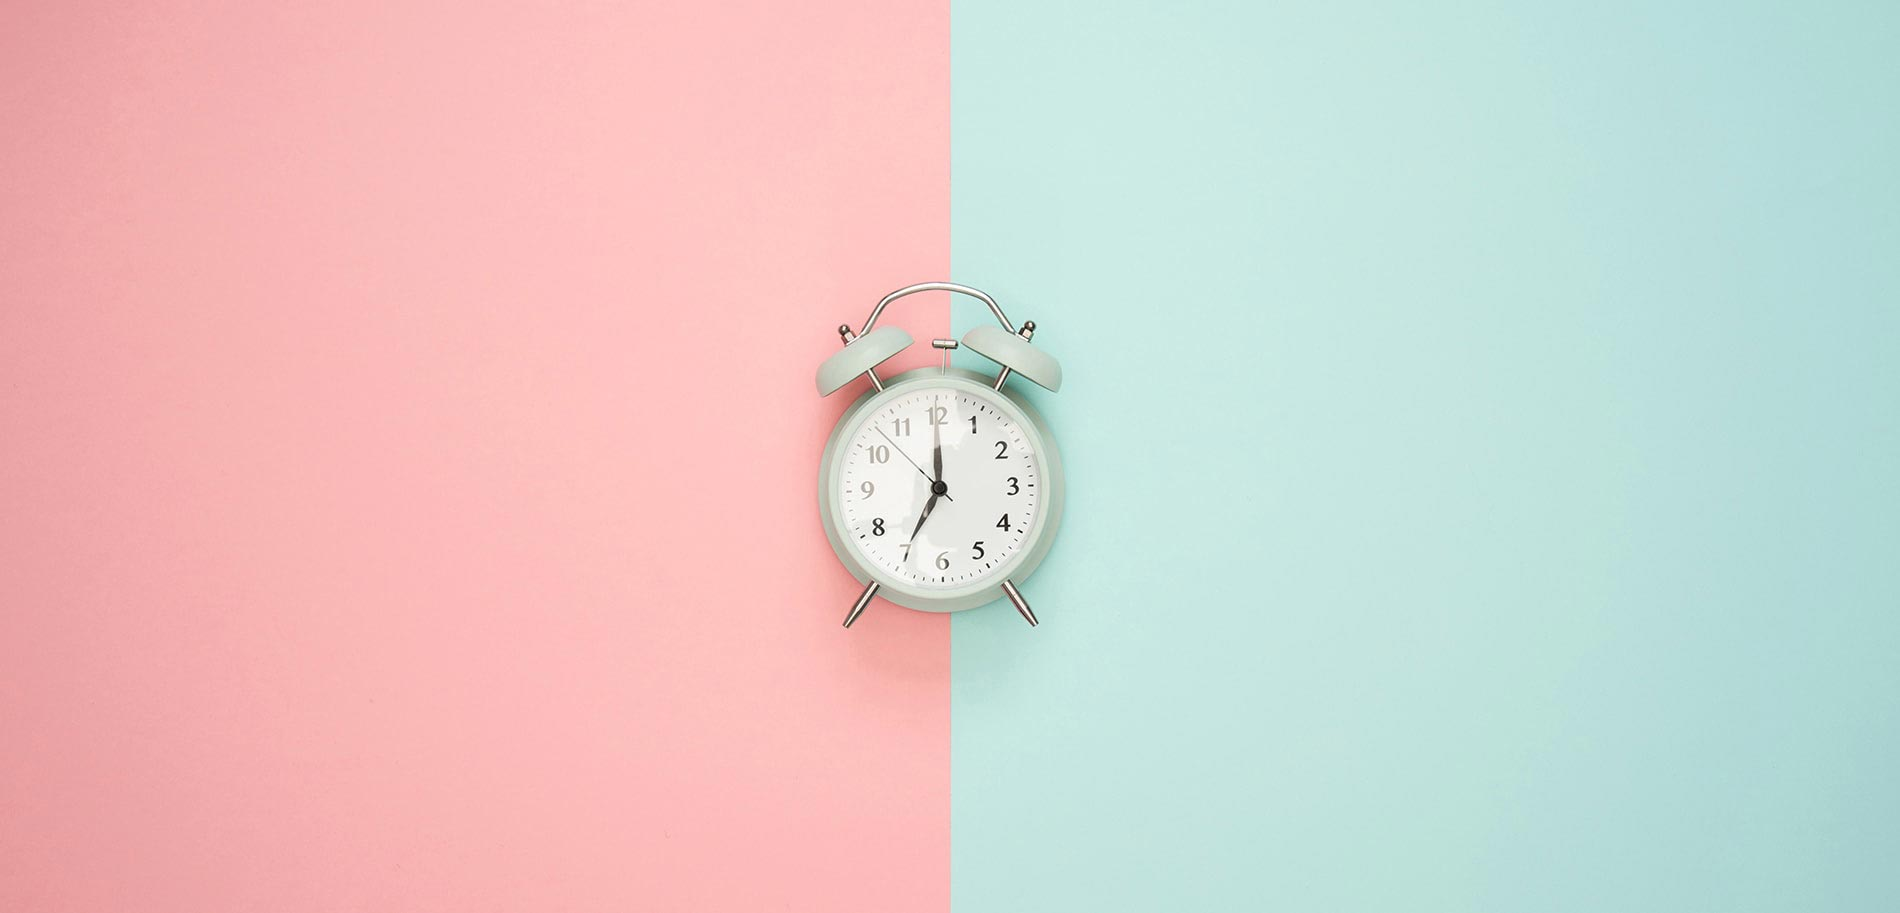 clock-on-pink-and-blue-background